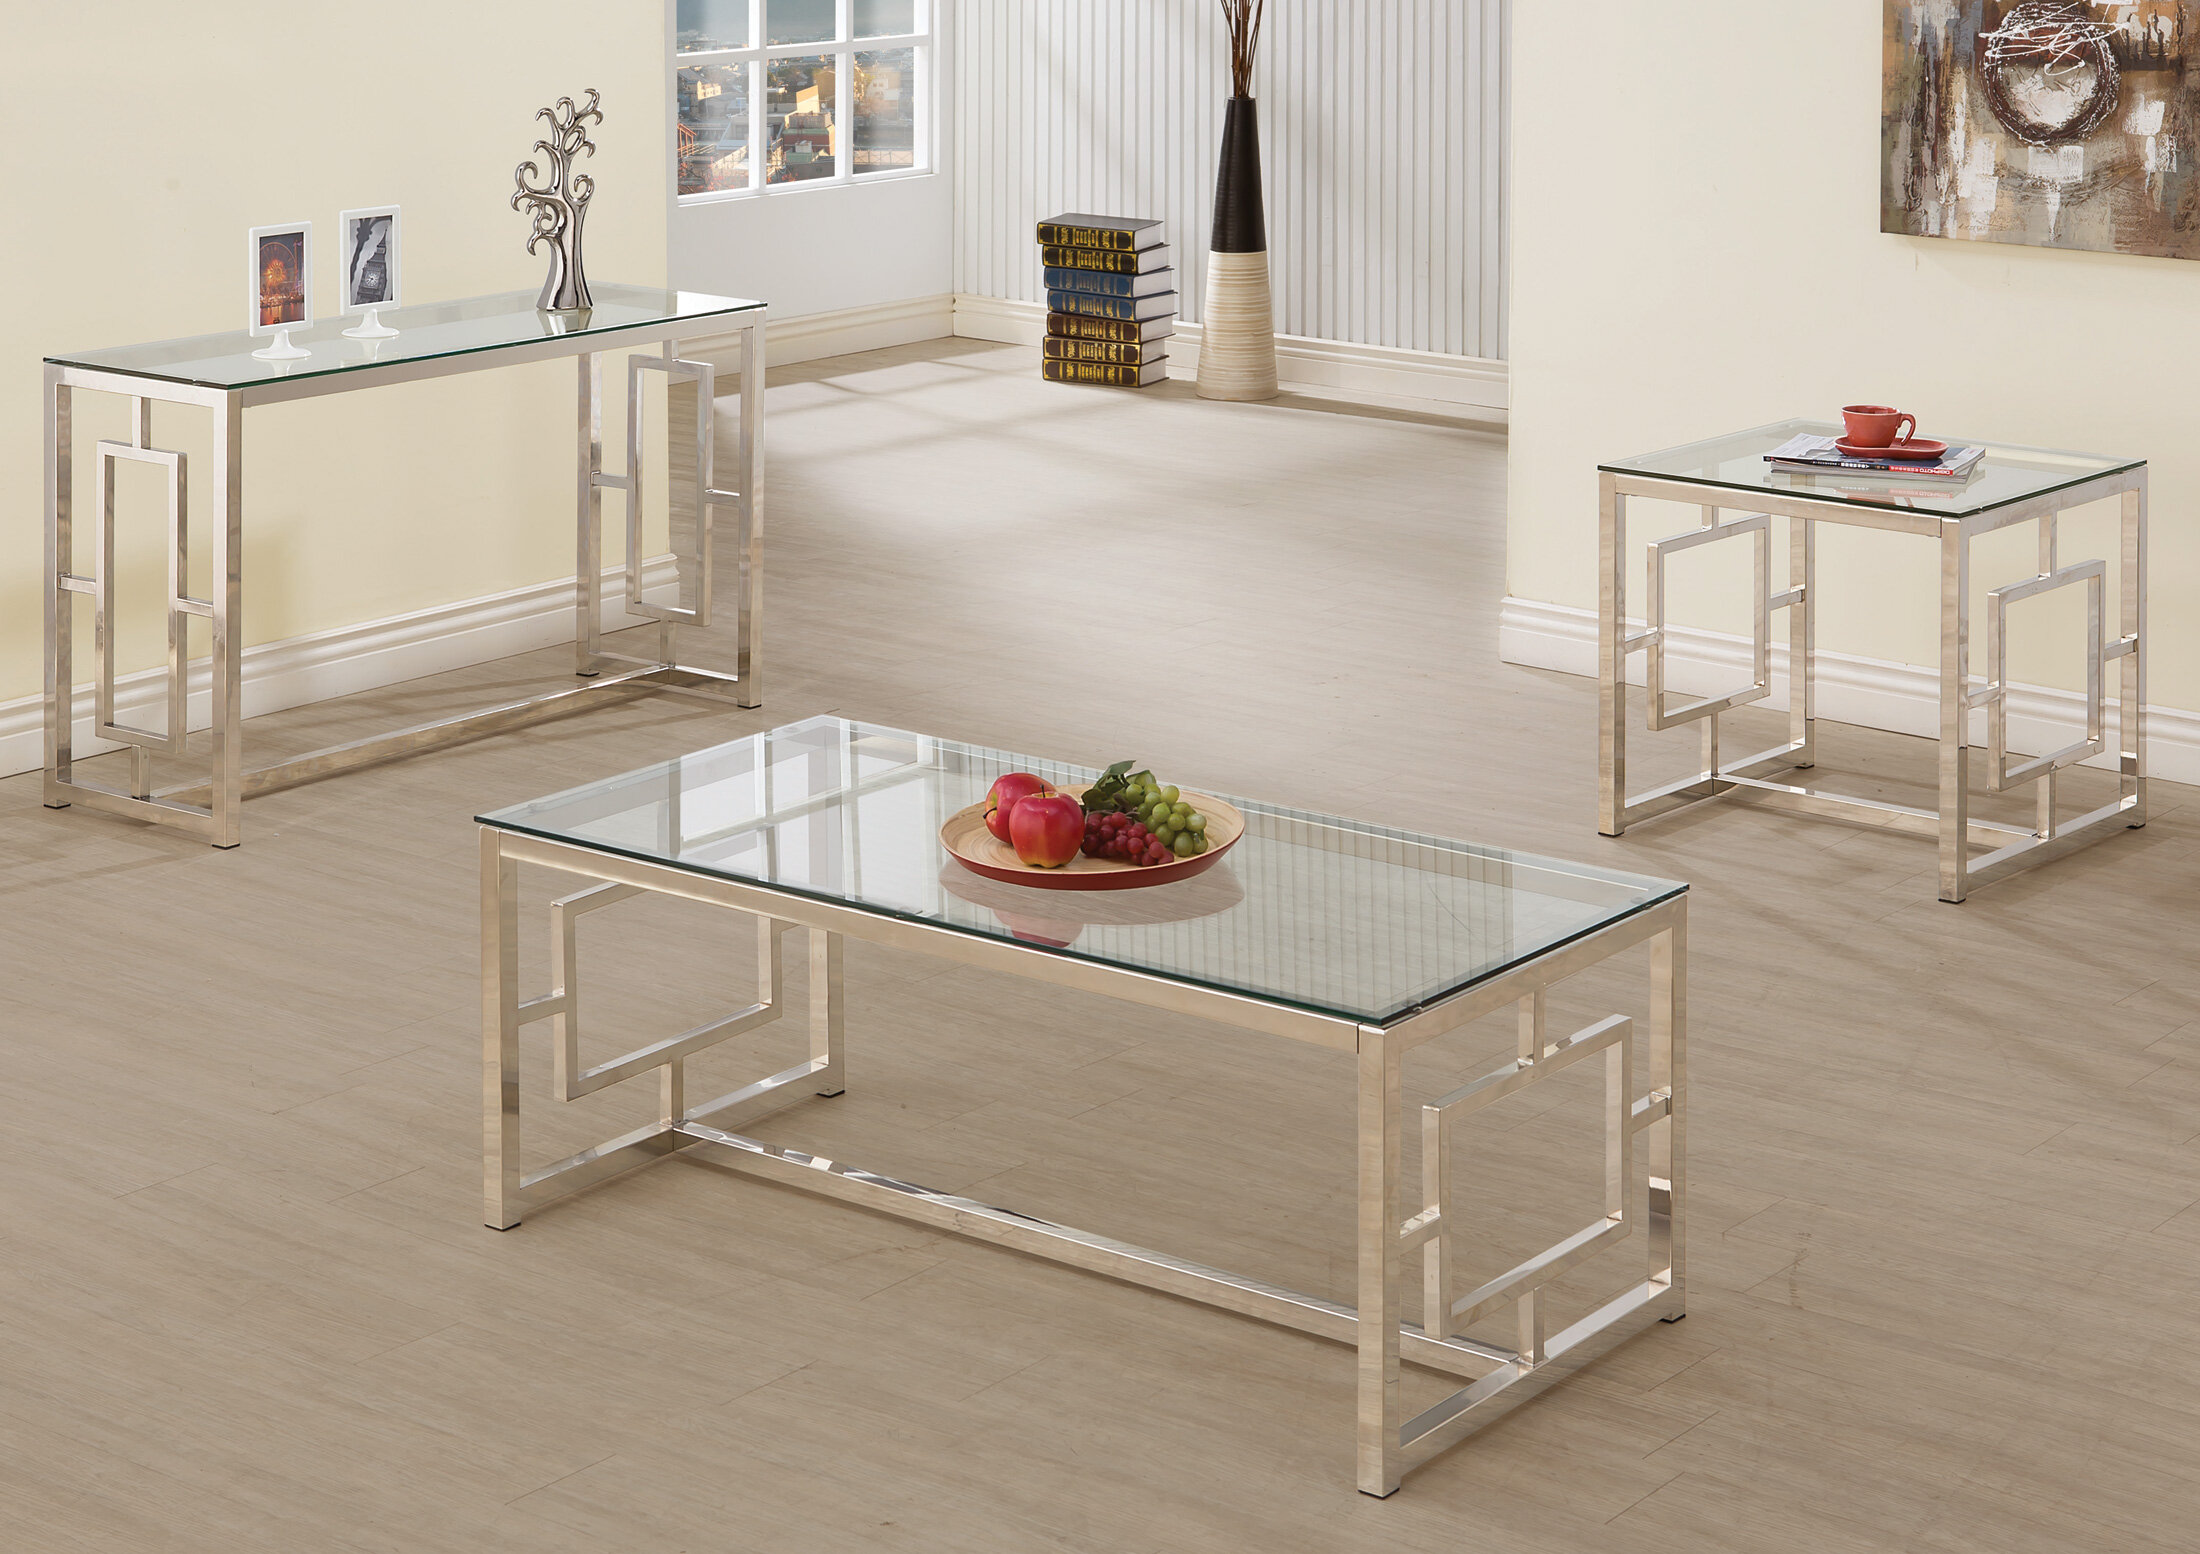 Picture of: Glass Coffee Table Sets You Ll Love In 2020 Wayfair